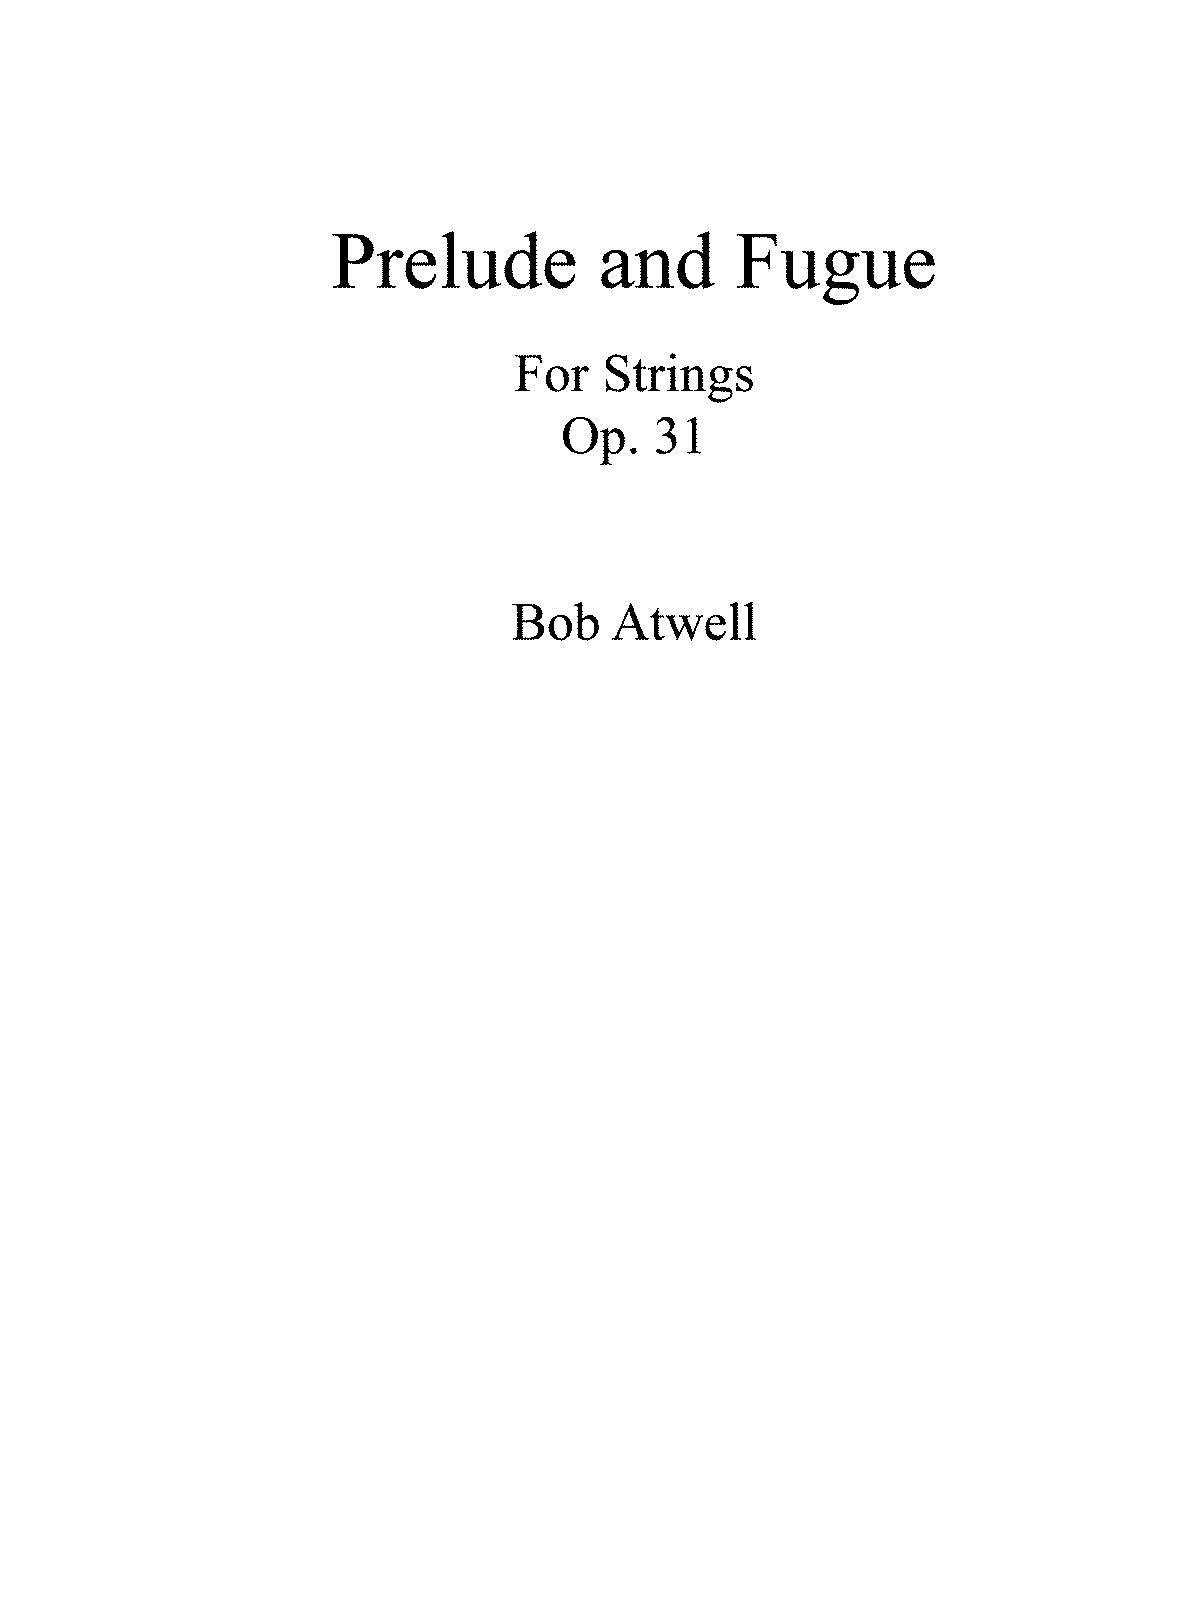 PMLP532797-Prelude and Fugue Strings.pdf